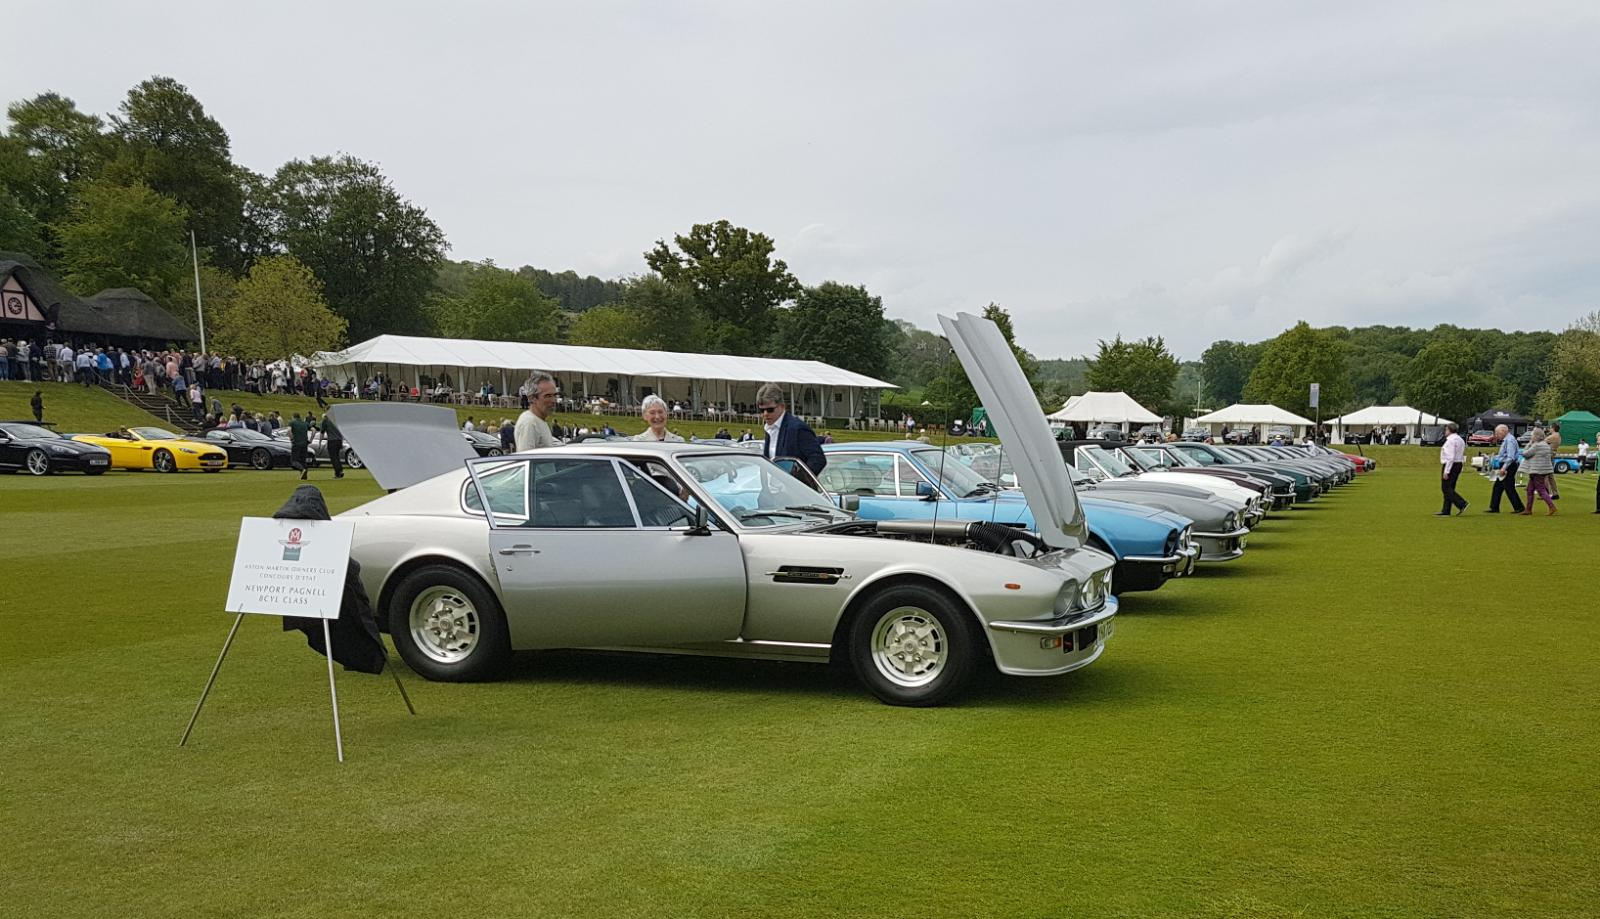 Owners' Club concours d'elegance at the Wormsley Estate, High Wycombe